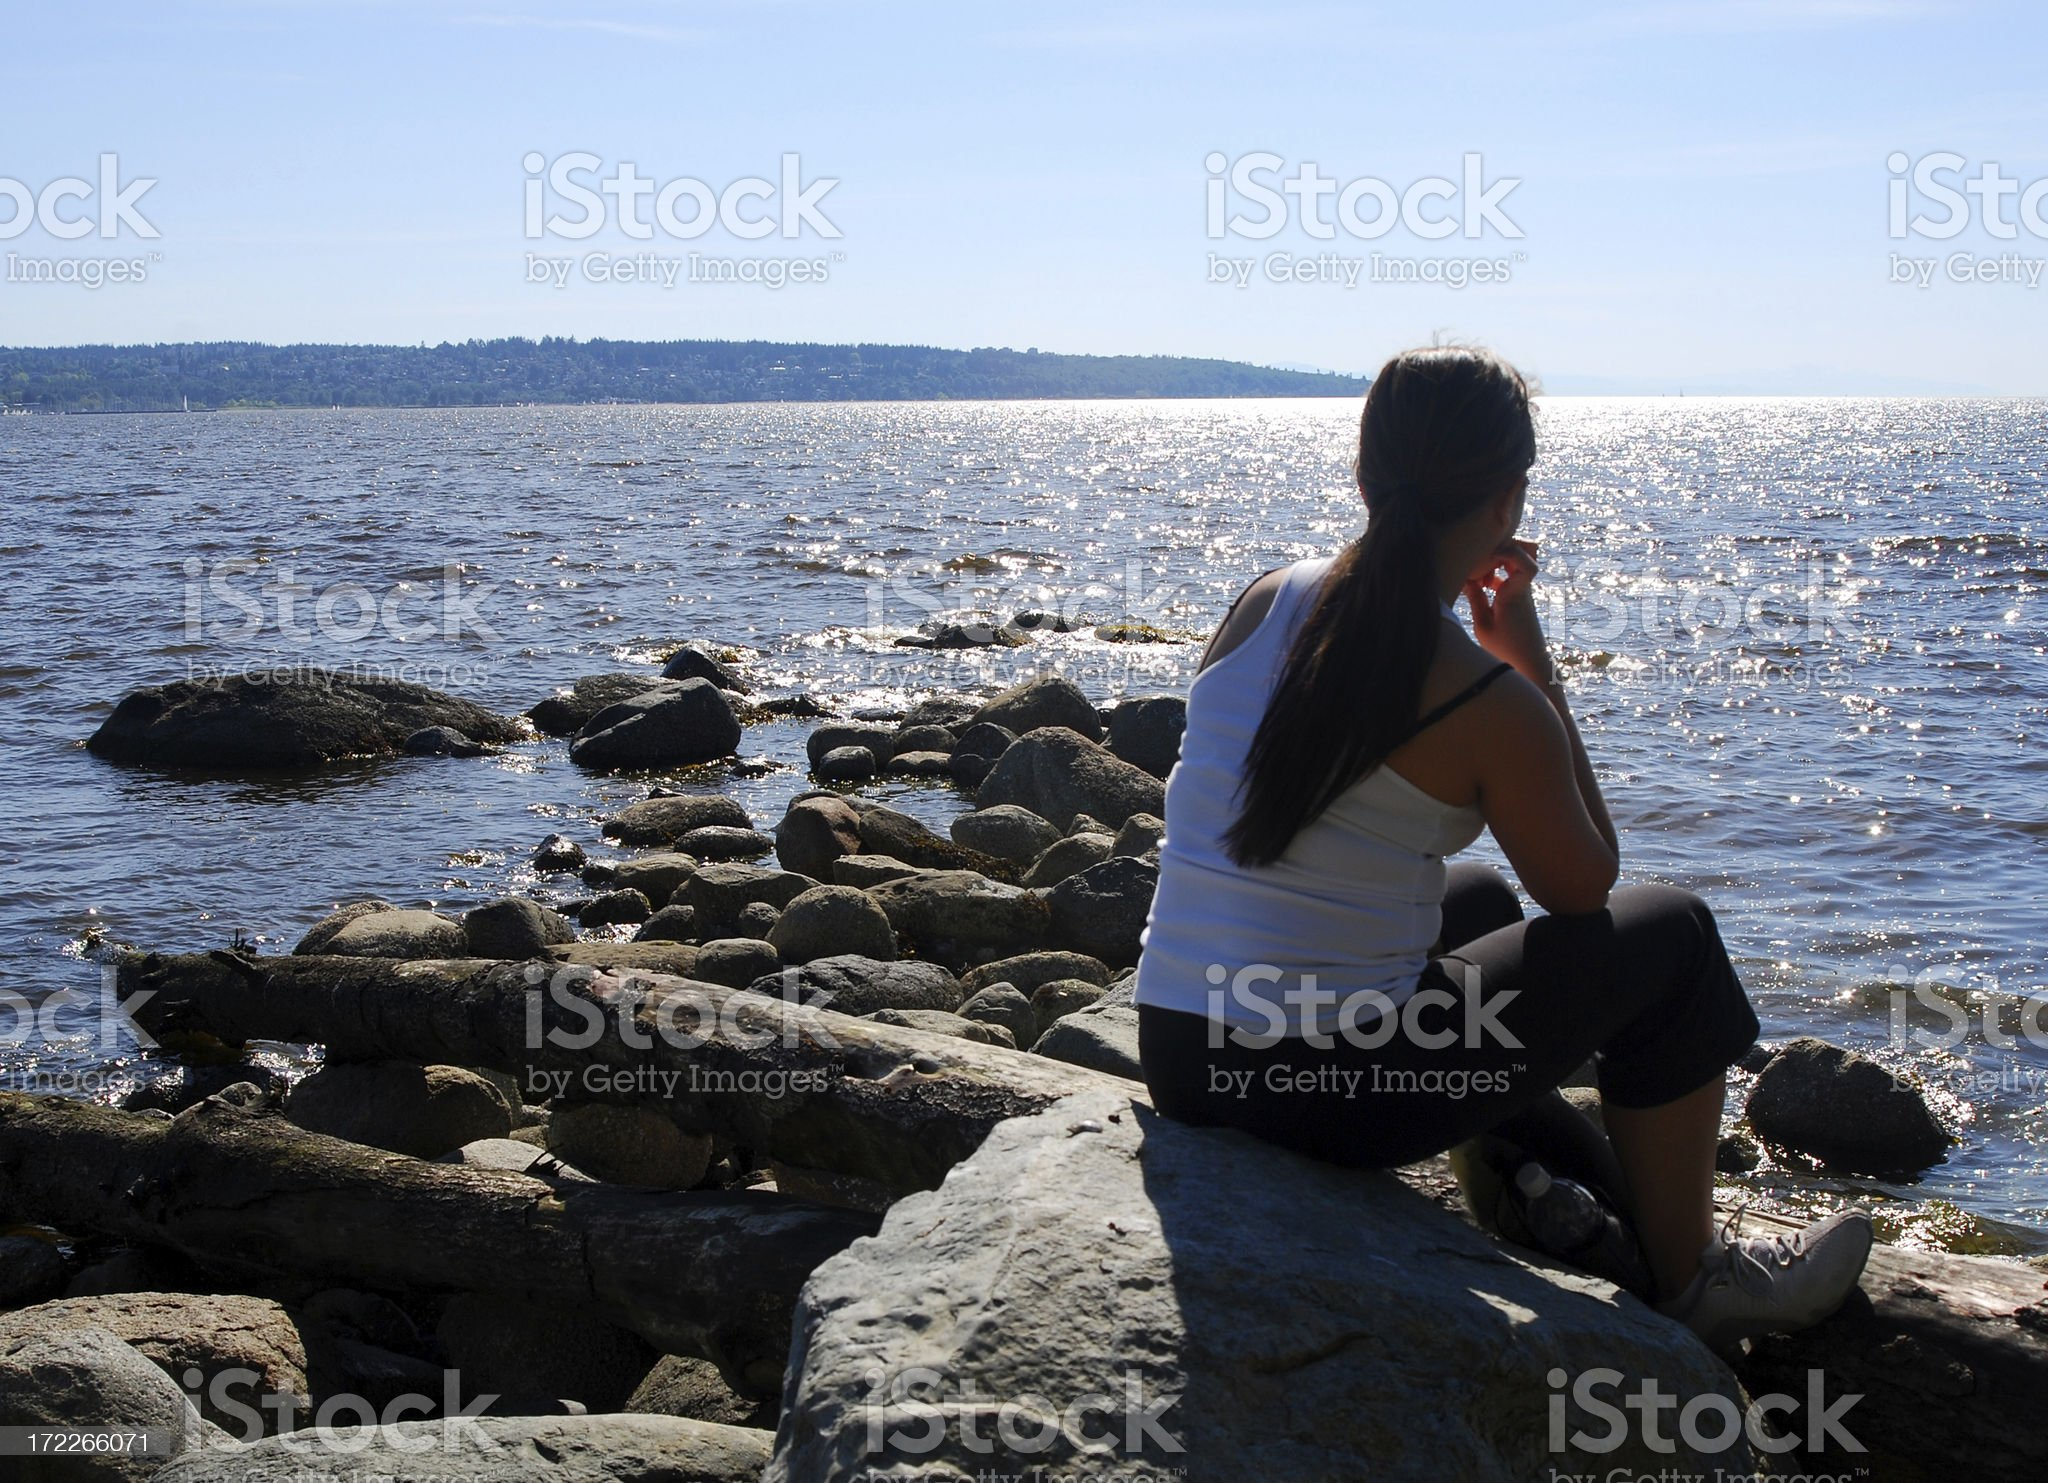 Edge of the Ocean royalty-free stock photo